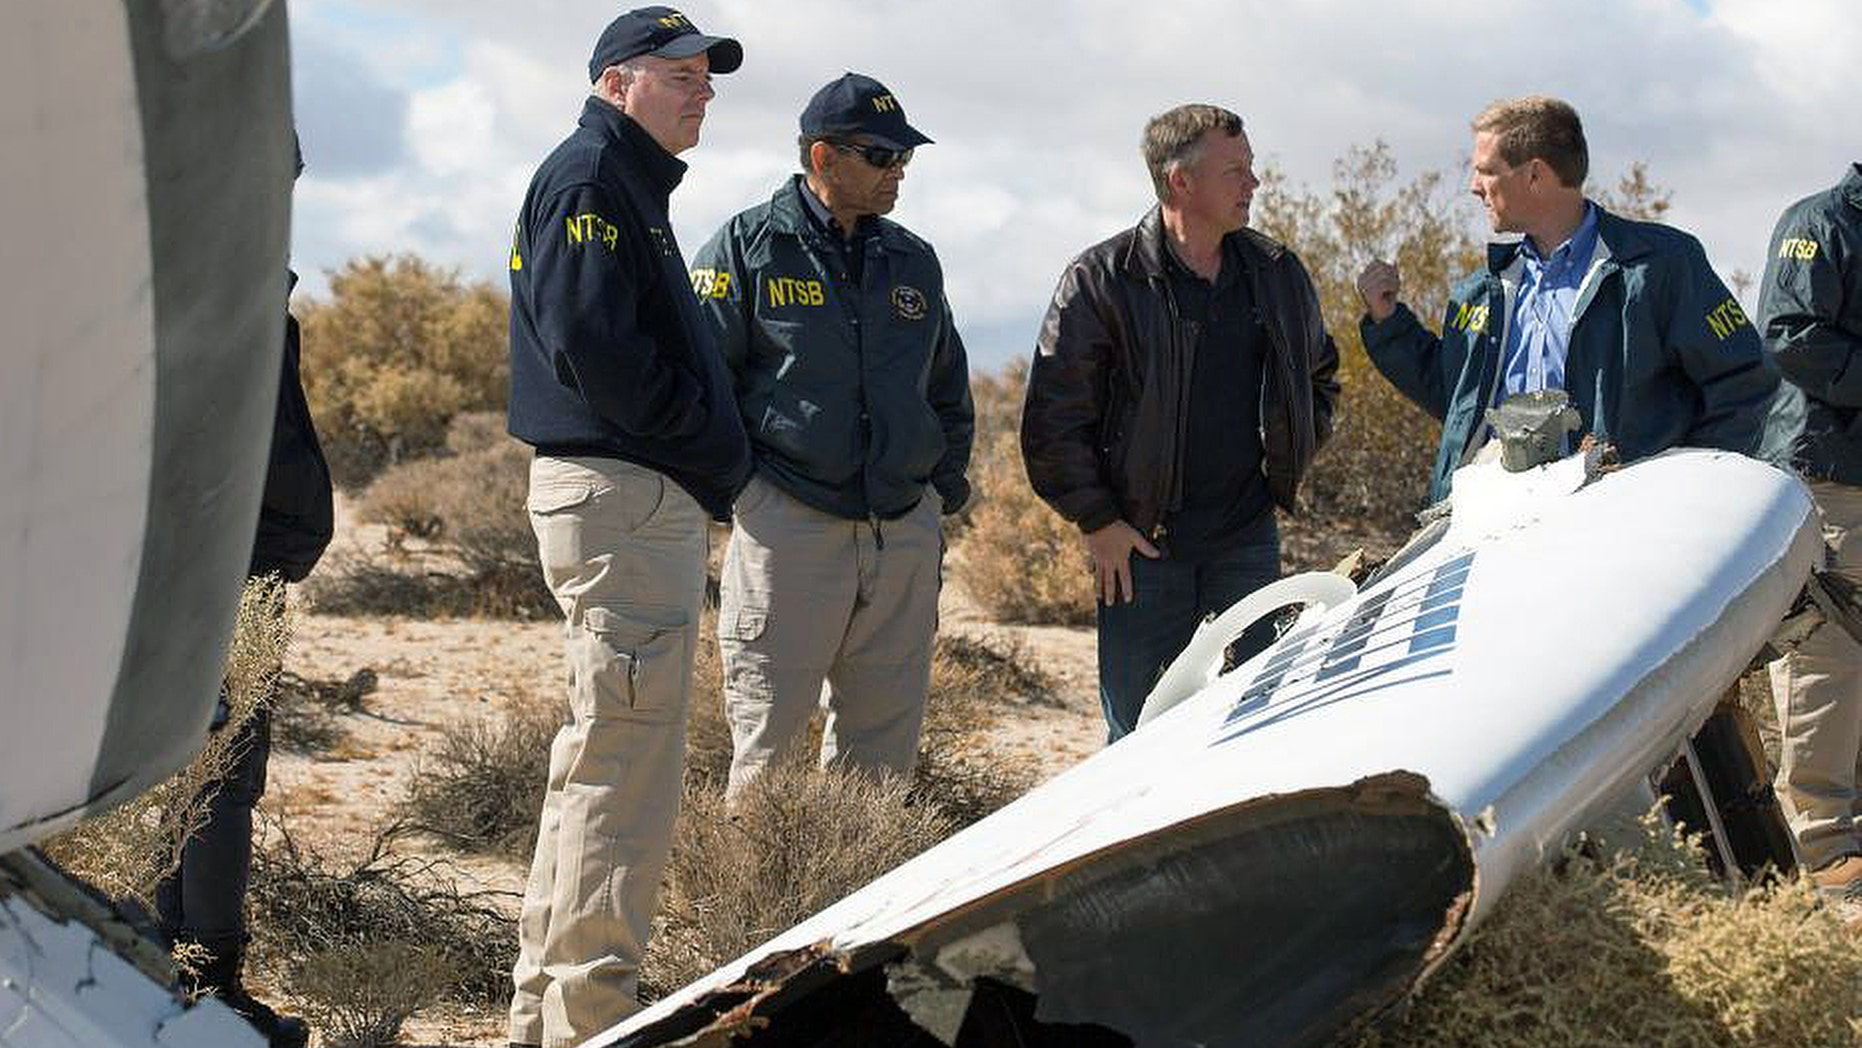 "In this Nov. 1, 2014, photo provided by the National Transportation Safety Board, Virgin Galactic pilot Todd Ericson, right, talks with NTSB Acting Chairman Christopher A. Hart, second from left, at the SpaceShipTwo accident site with investigators in Mojave, Calif. The cause of Friday's crash of Virgin Galactic's SpaceShipTwo has not been determined, but investigators found the ""feathering"" system, which rotates the tail to create drag, was activated before the craft reached the appropriate speed, National Transportation Safety Board Acting Chairman Christopher Hart said. (AP Photo/NTSB)"